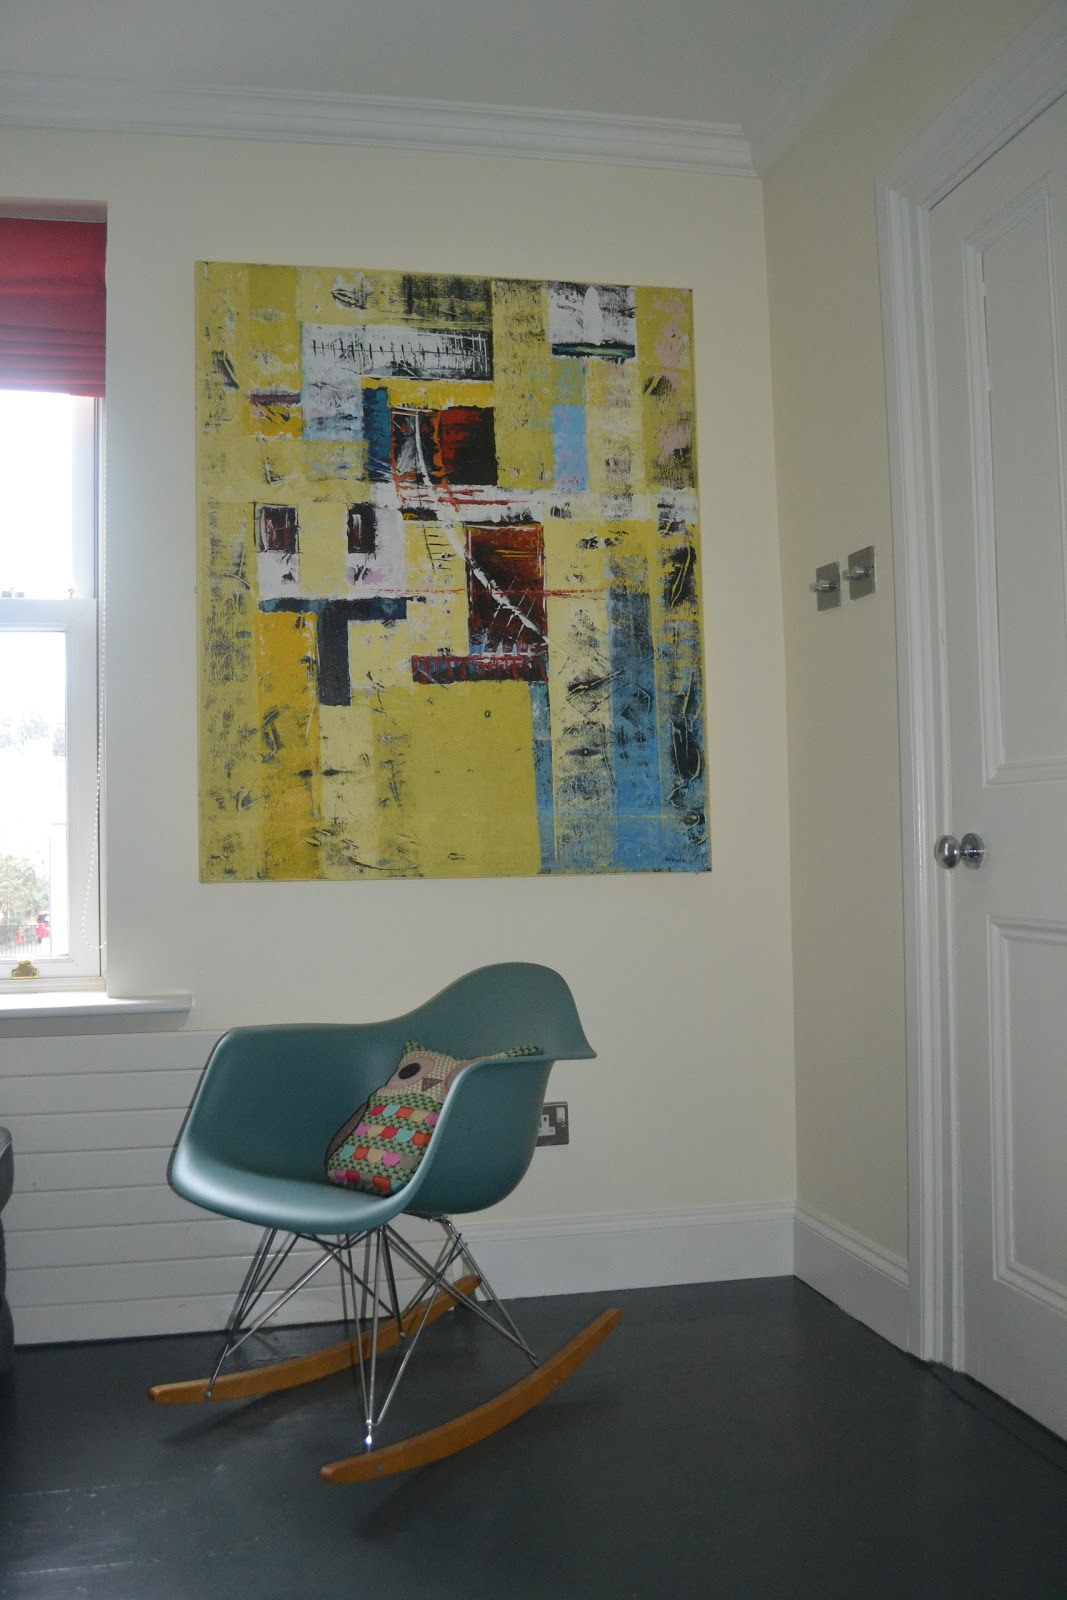 AFTER: The Eames rocker by Vitra (purchased at Arnotts) perches on the  title=